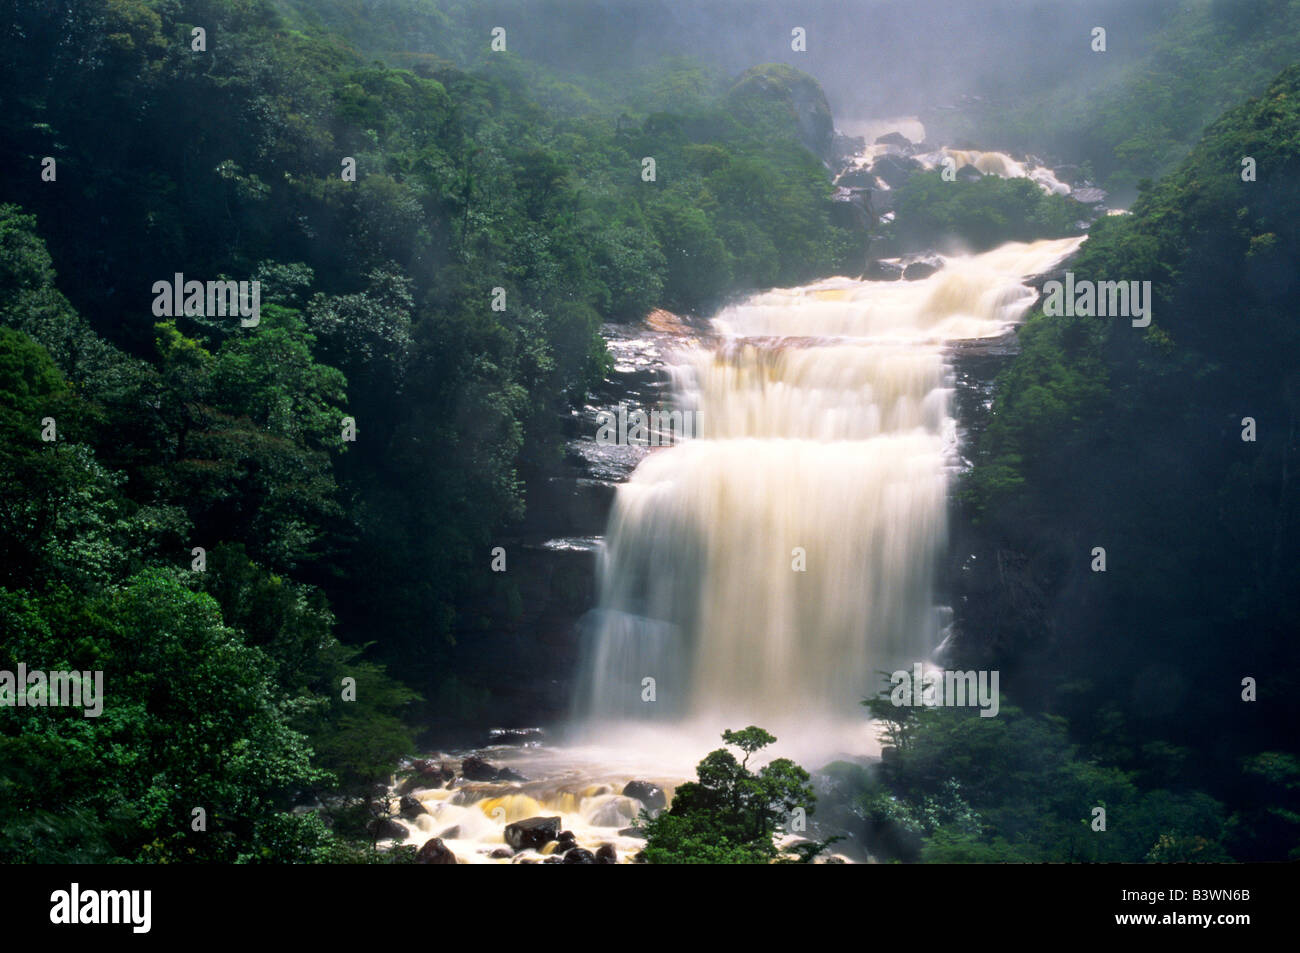 South America, Venezuela, Canaima National Park, Angel Falls. View of the base of the falls. - Stock Image